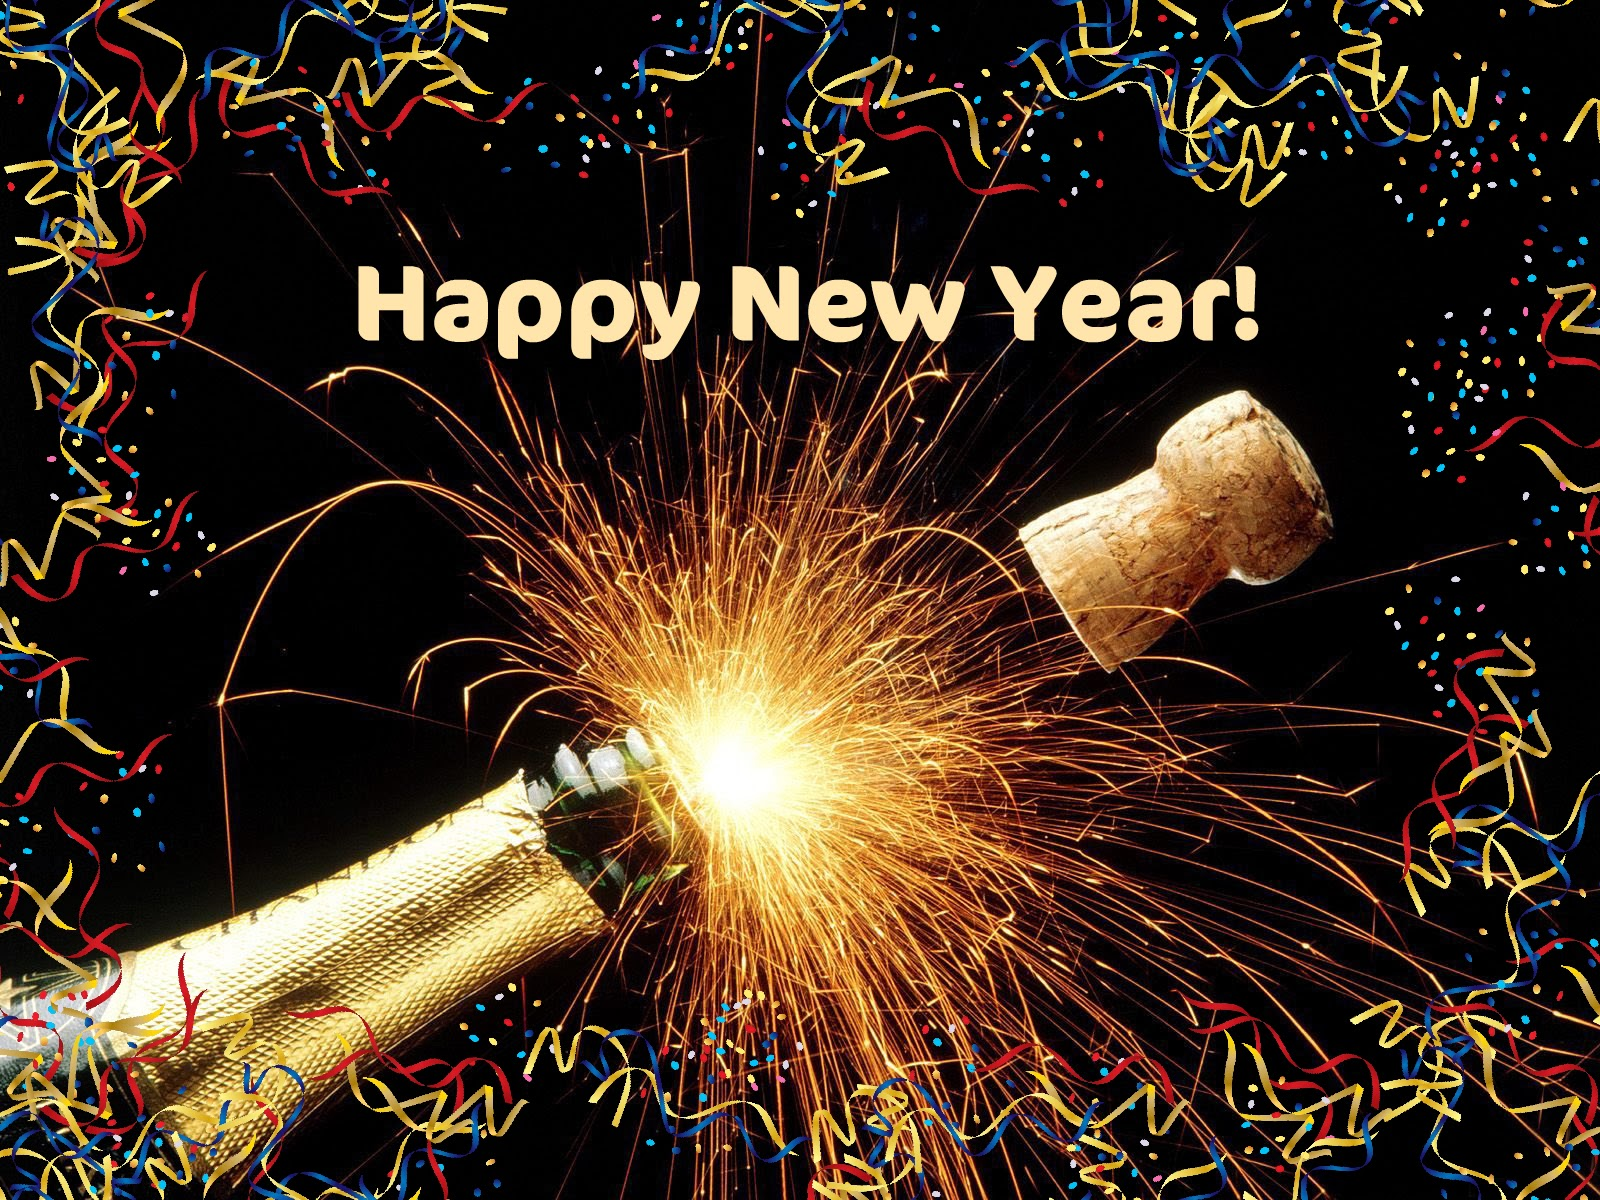 New Year Poems: Happy New Year 2014 Wishes Quotes - New ...